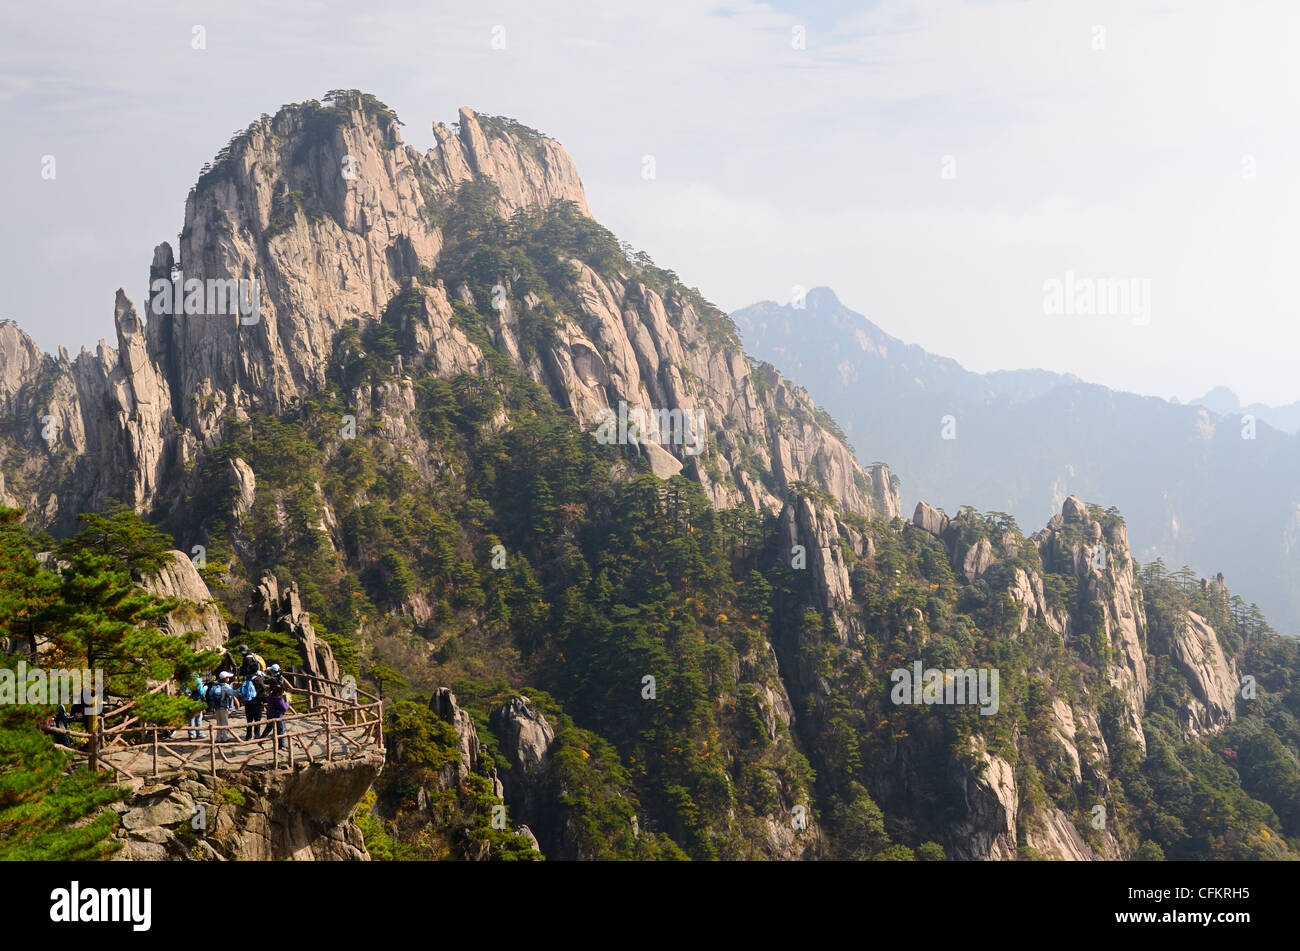 Lookout to Stalagmite Gang peaks at East Sea area of Huangshan Yellow mountain China - Stock Image